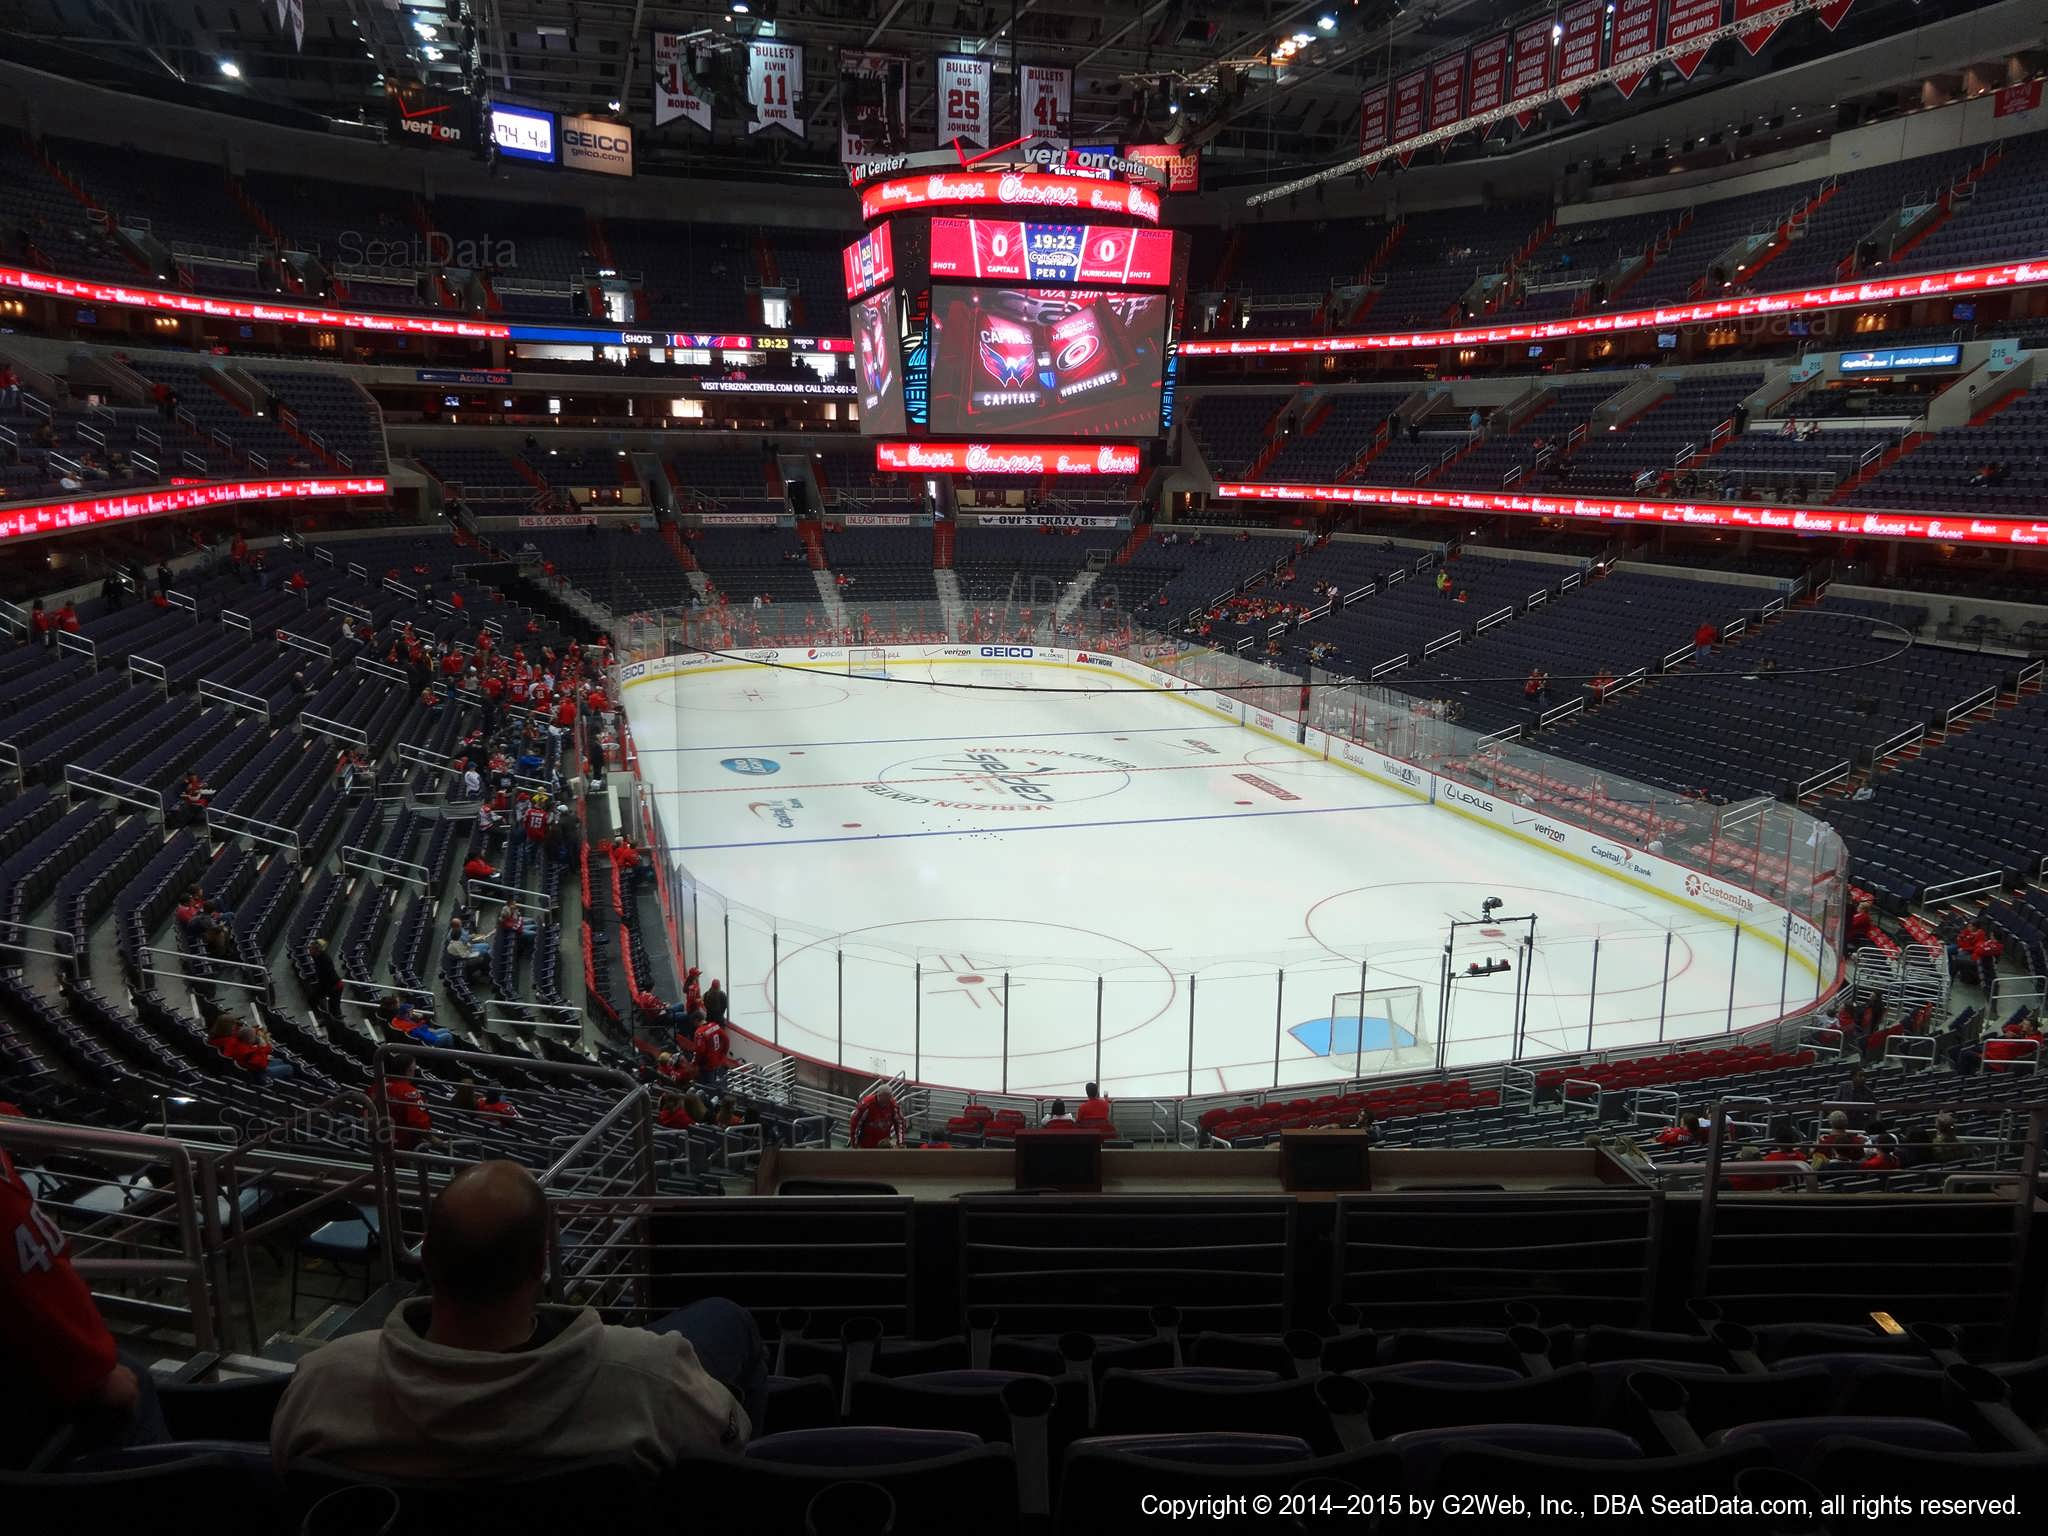 b941d3f8b3a Capital One Arena Section 206 - Washington Capitals - RateYourSeats.com